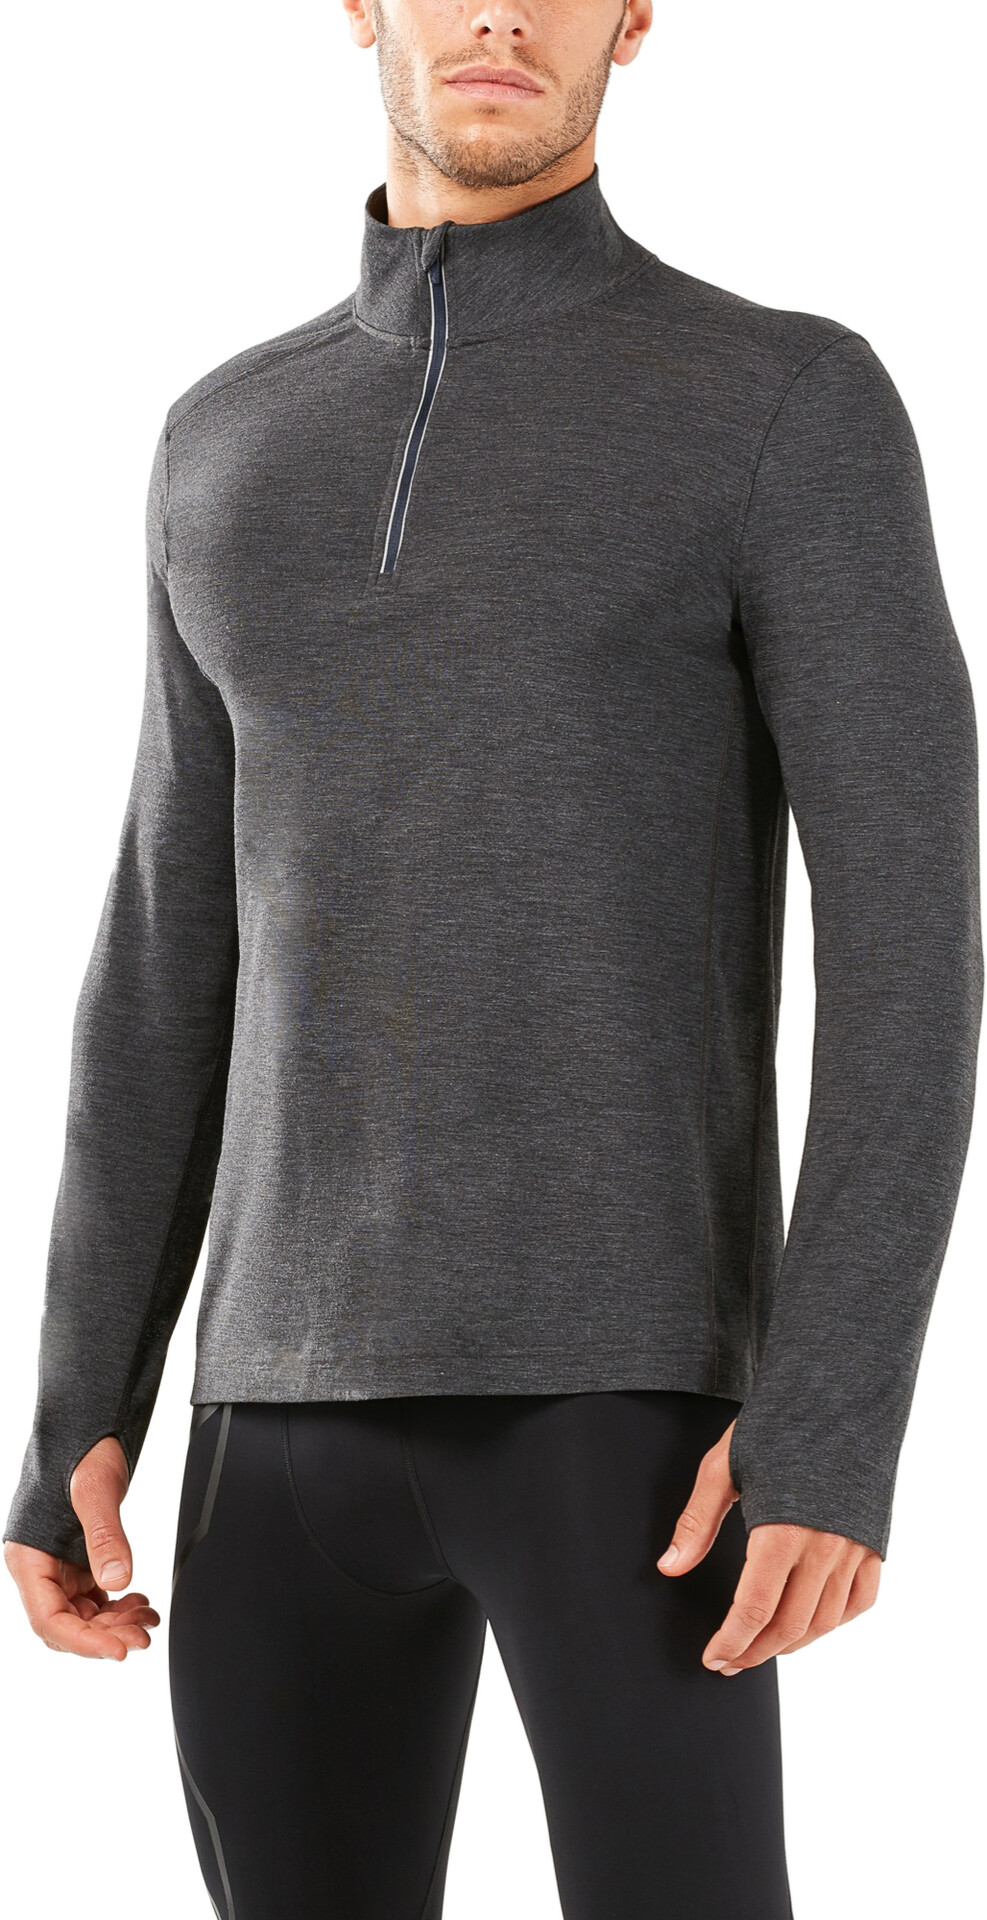 2XU 2XU 2XU M's Heat 1/4 Zip Shirt outer space/outer space 2618a5